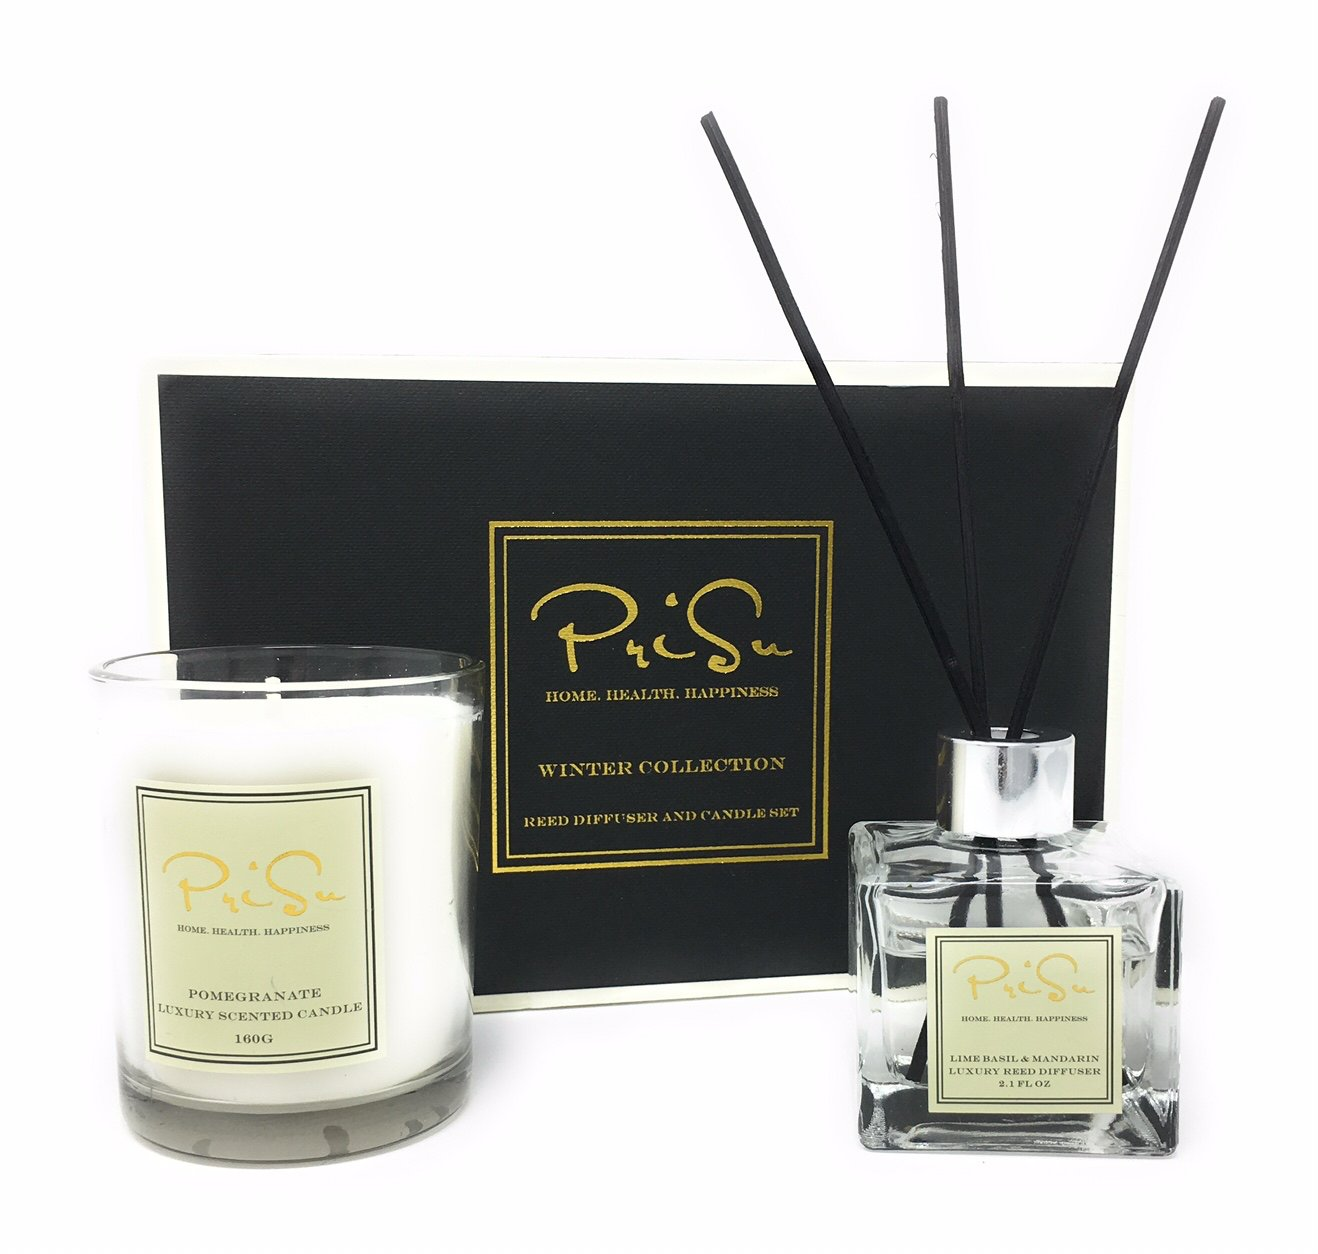 PriSu Special Edition Gift Set - Lime Basil & Mandarin Scented Essential Oil Reed Diffuser (2.1 fl oz) and Pomegranate Scented 100% Soy Wax Candle (5.6 oz)